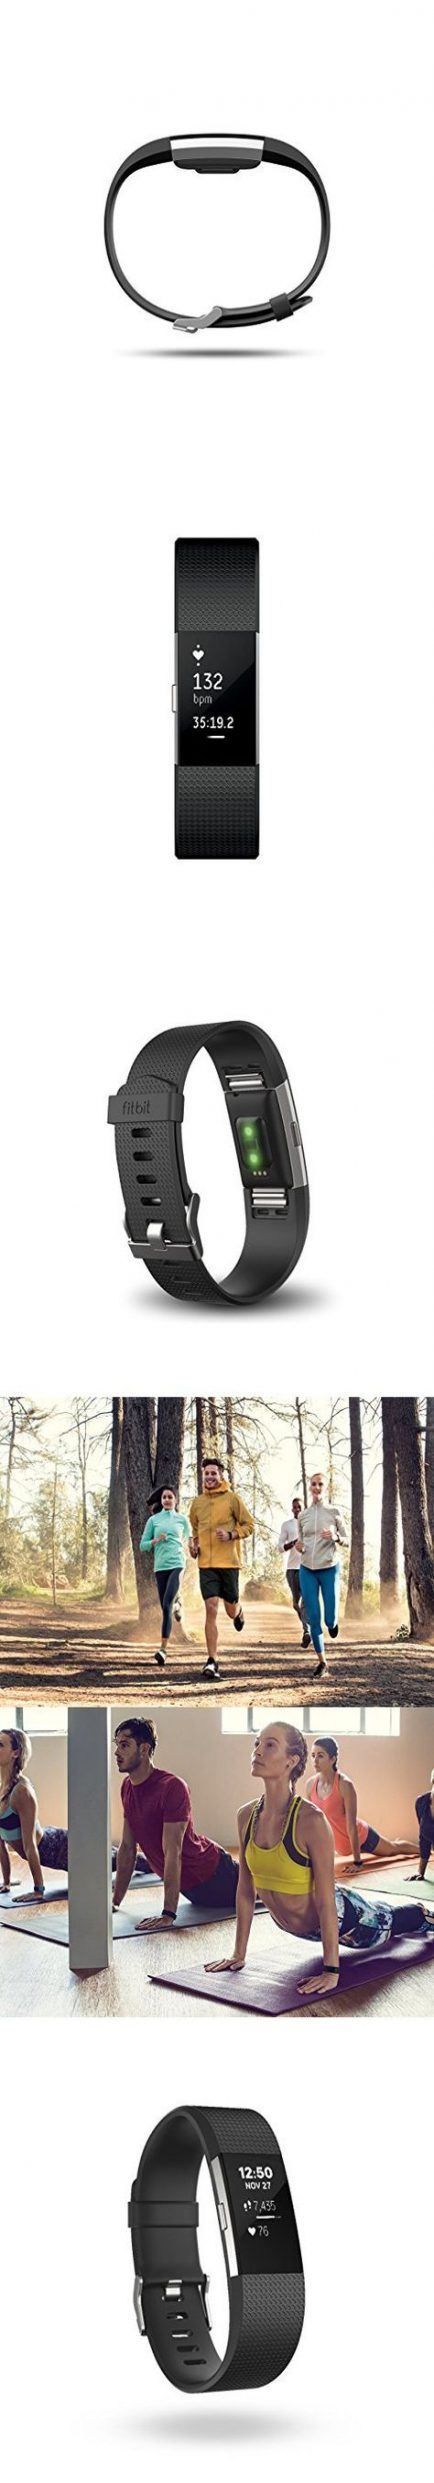 38 Ideas Fitness Tracker Fitbit Heart Rate #fitness